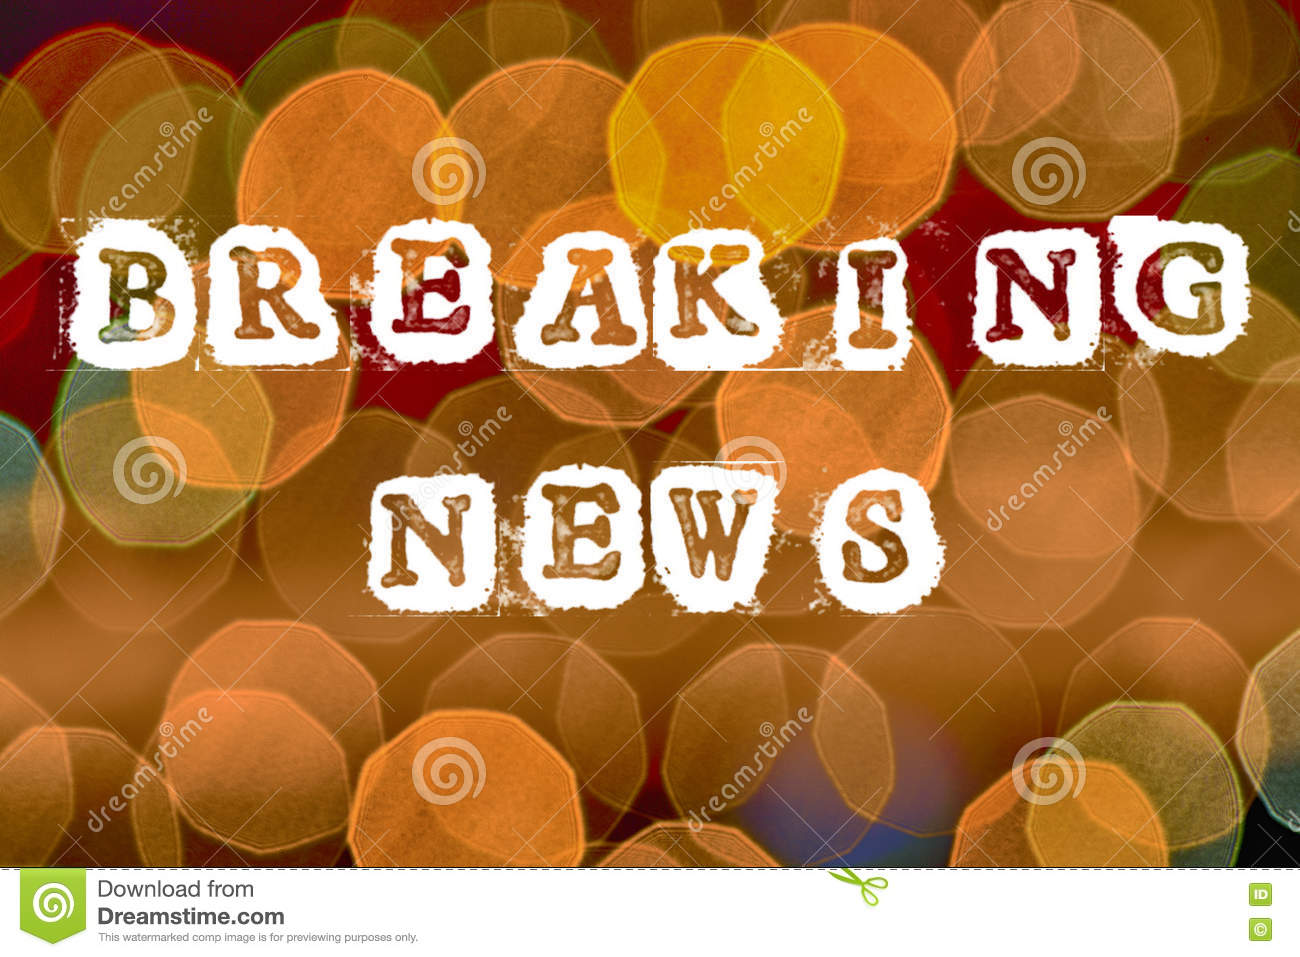 Breaking news stock illustration  Illustration of media